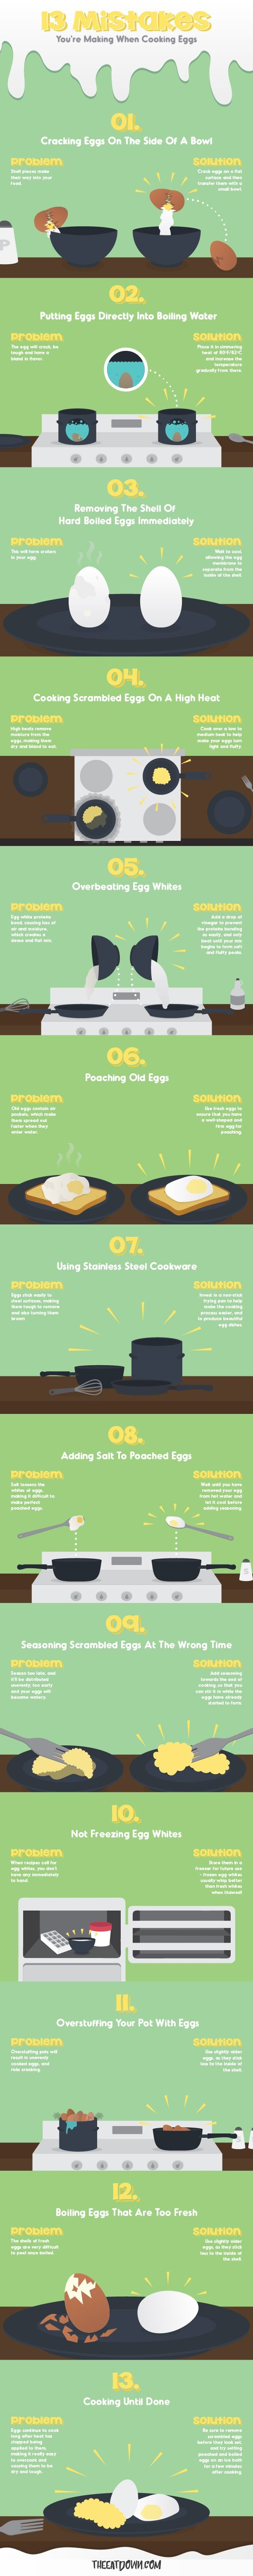 13 Mistakes You're Making When Cooking Eggs #infographic